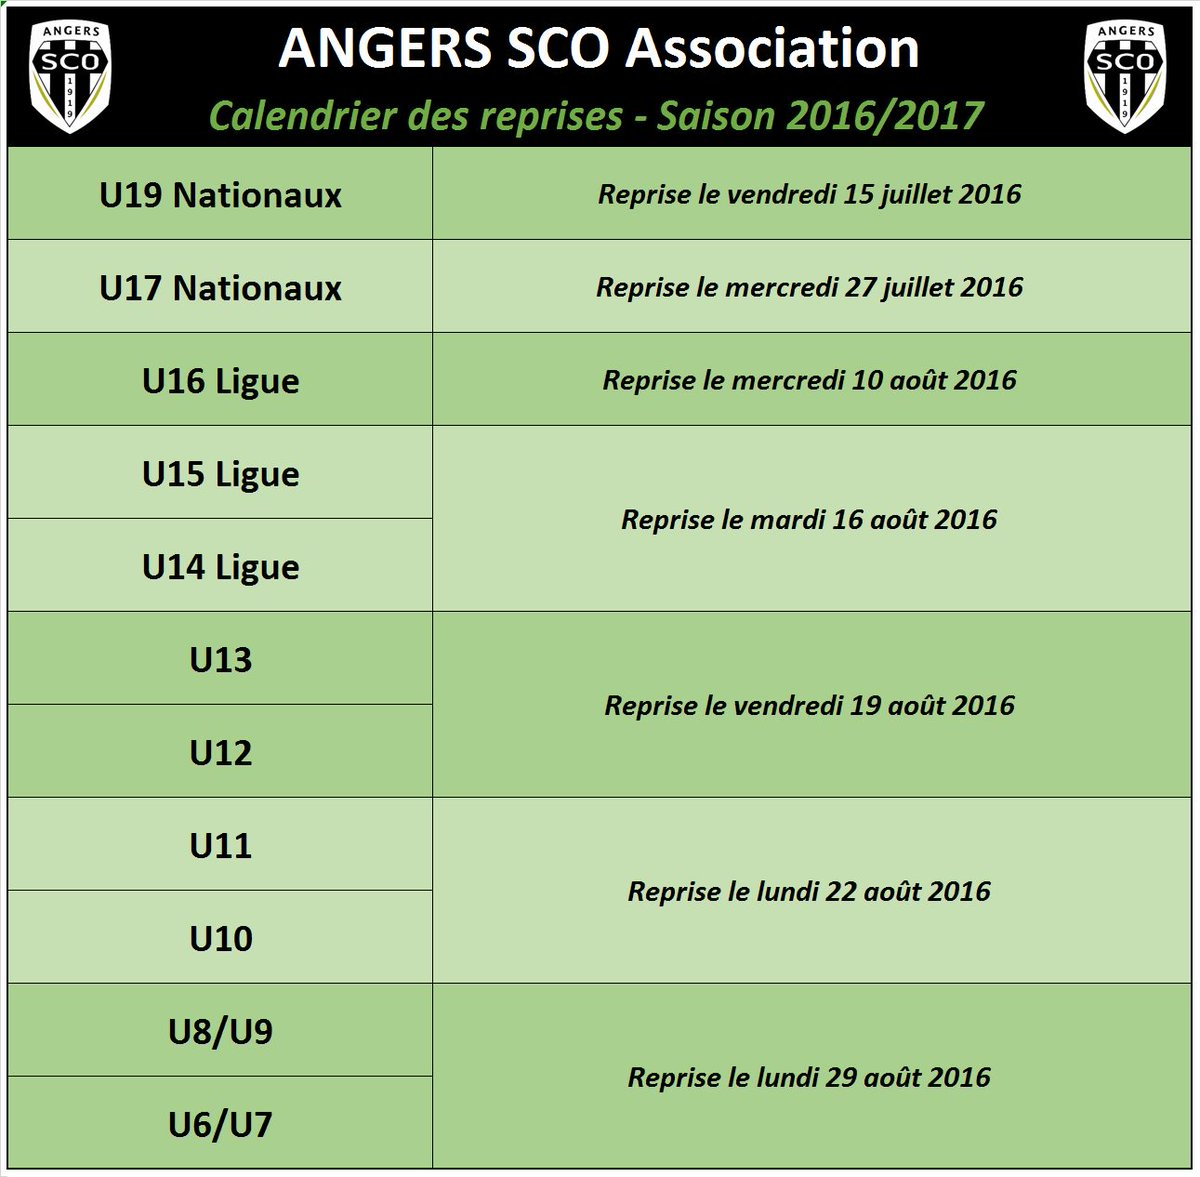 Sco Angers Calendrier.Angers Sco Asso On Twitter Voici Le Calendrier Des